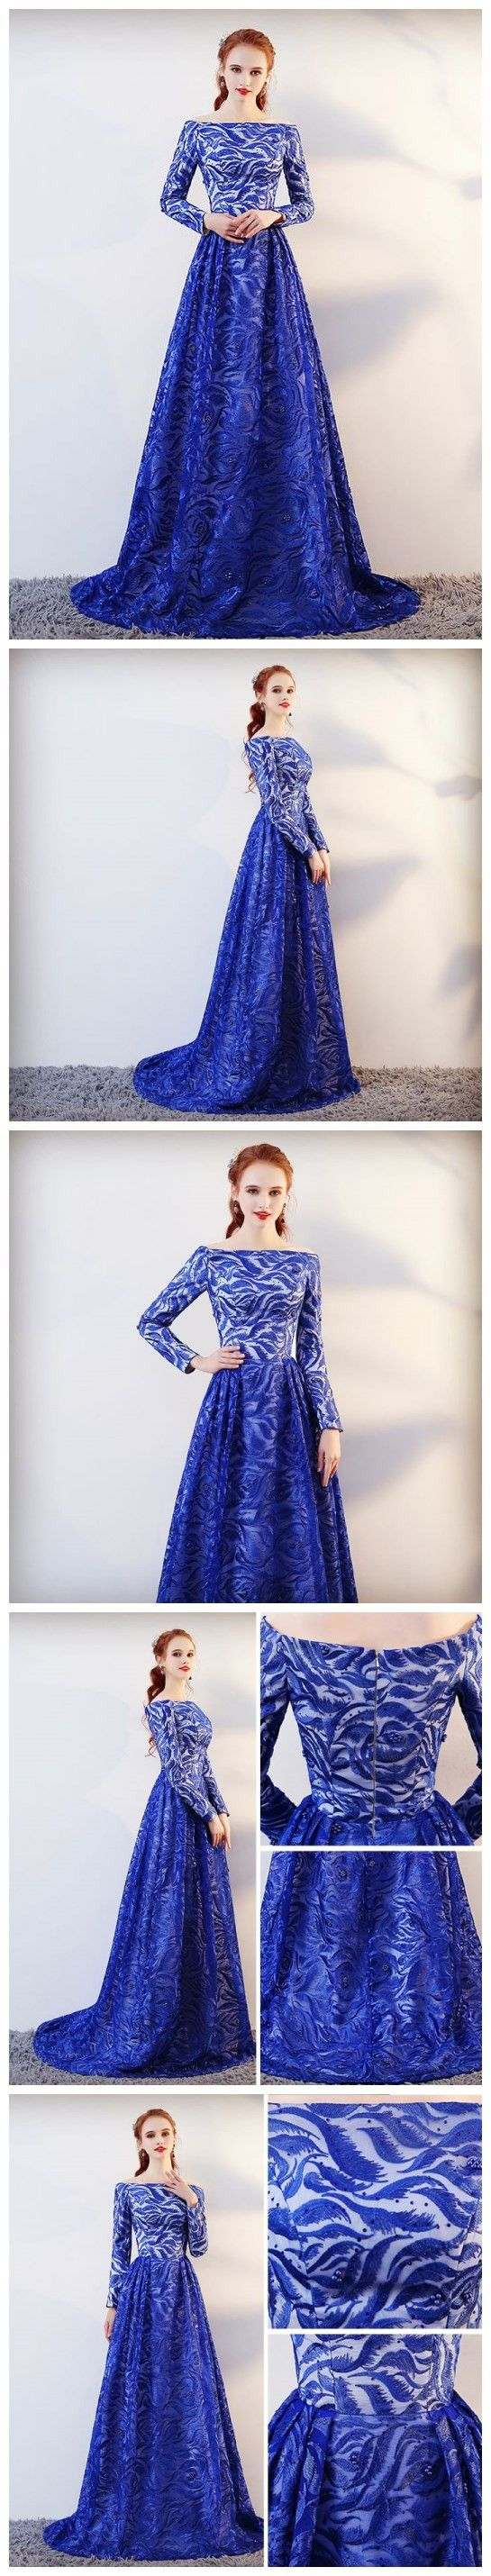 blue prom dresses long bateau lace long sleeve prom dress